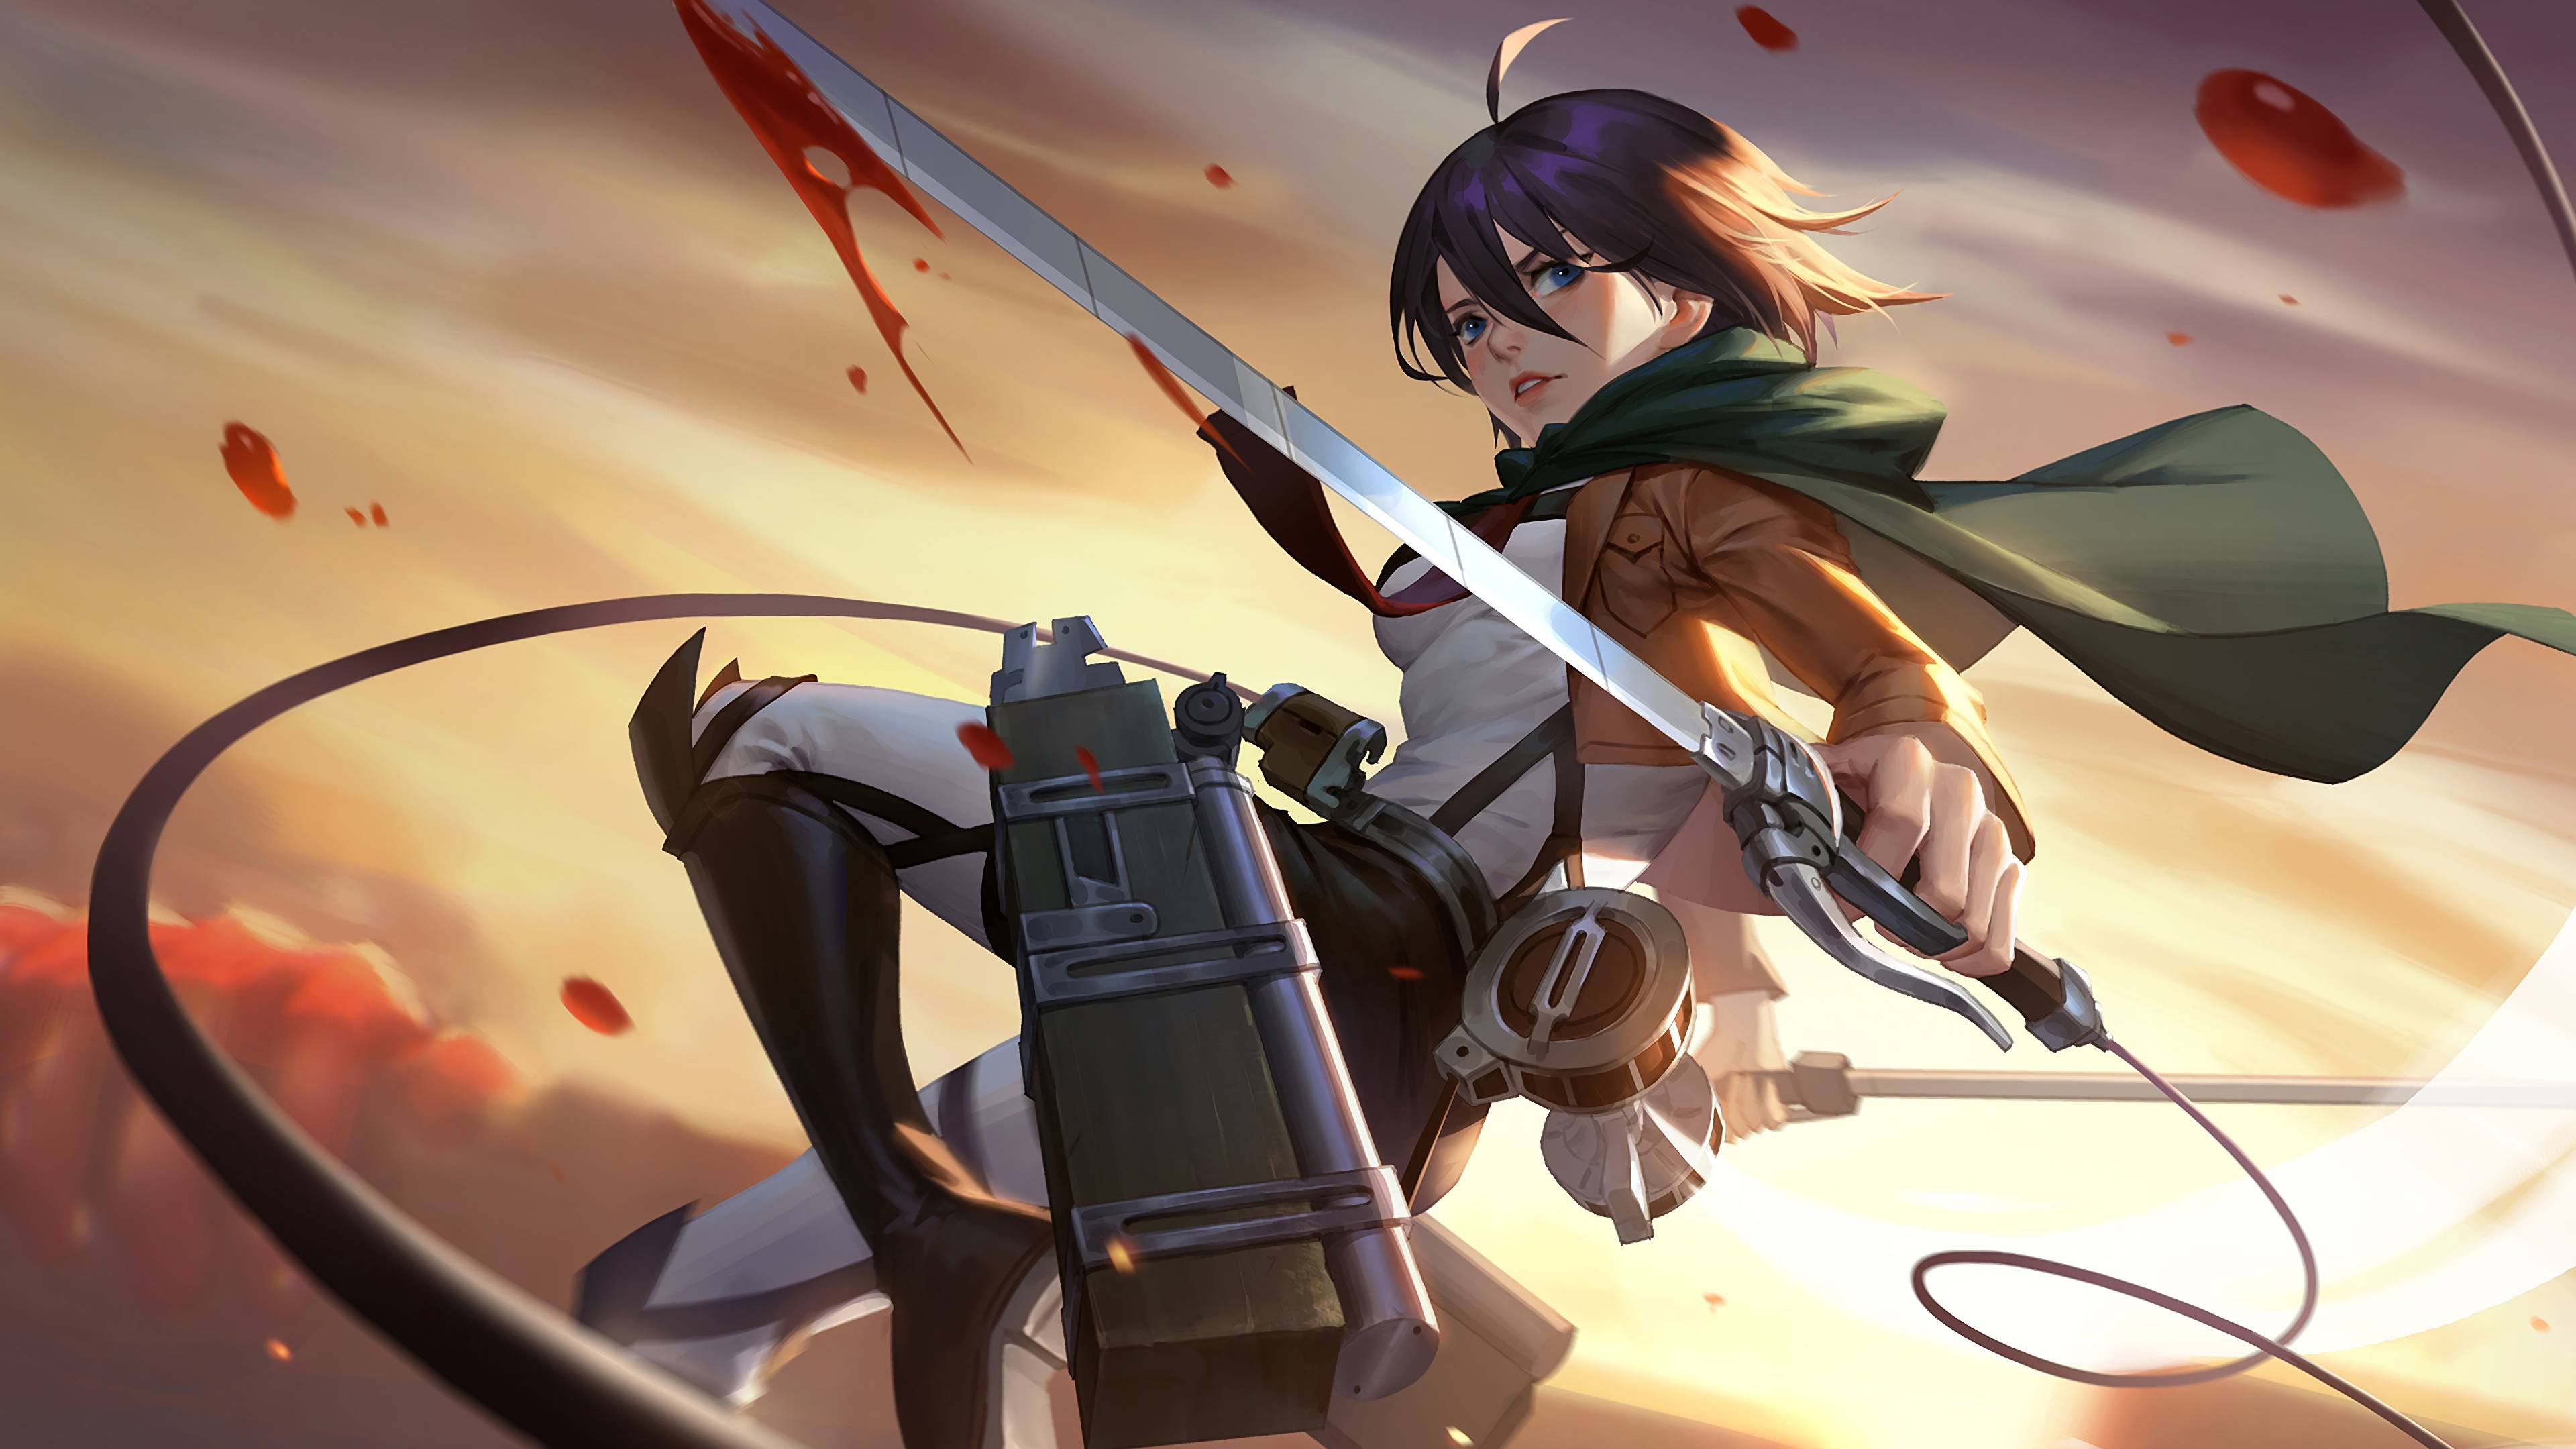 Attack On Titan Mikasa Wallpapers On Wallpaperdog